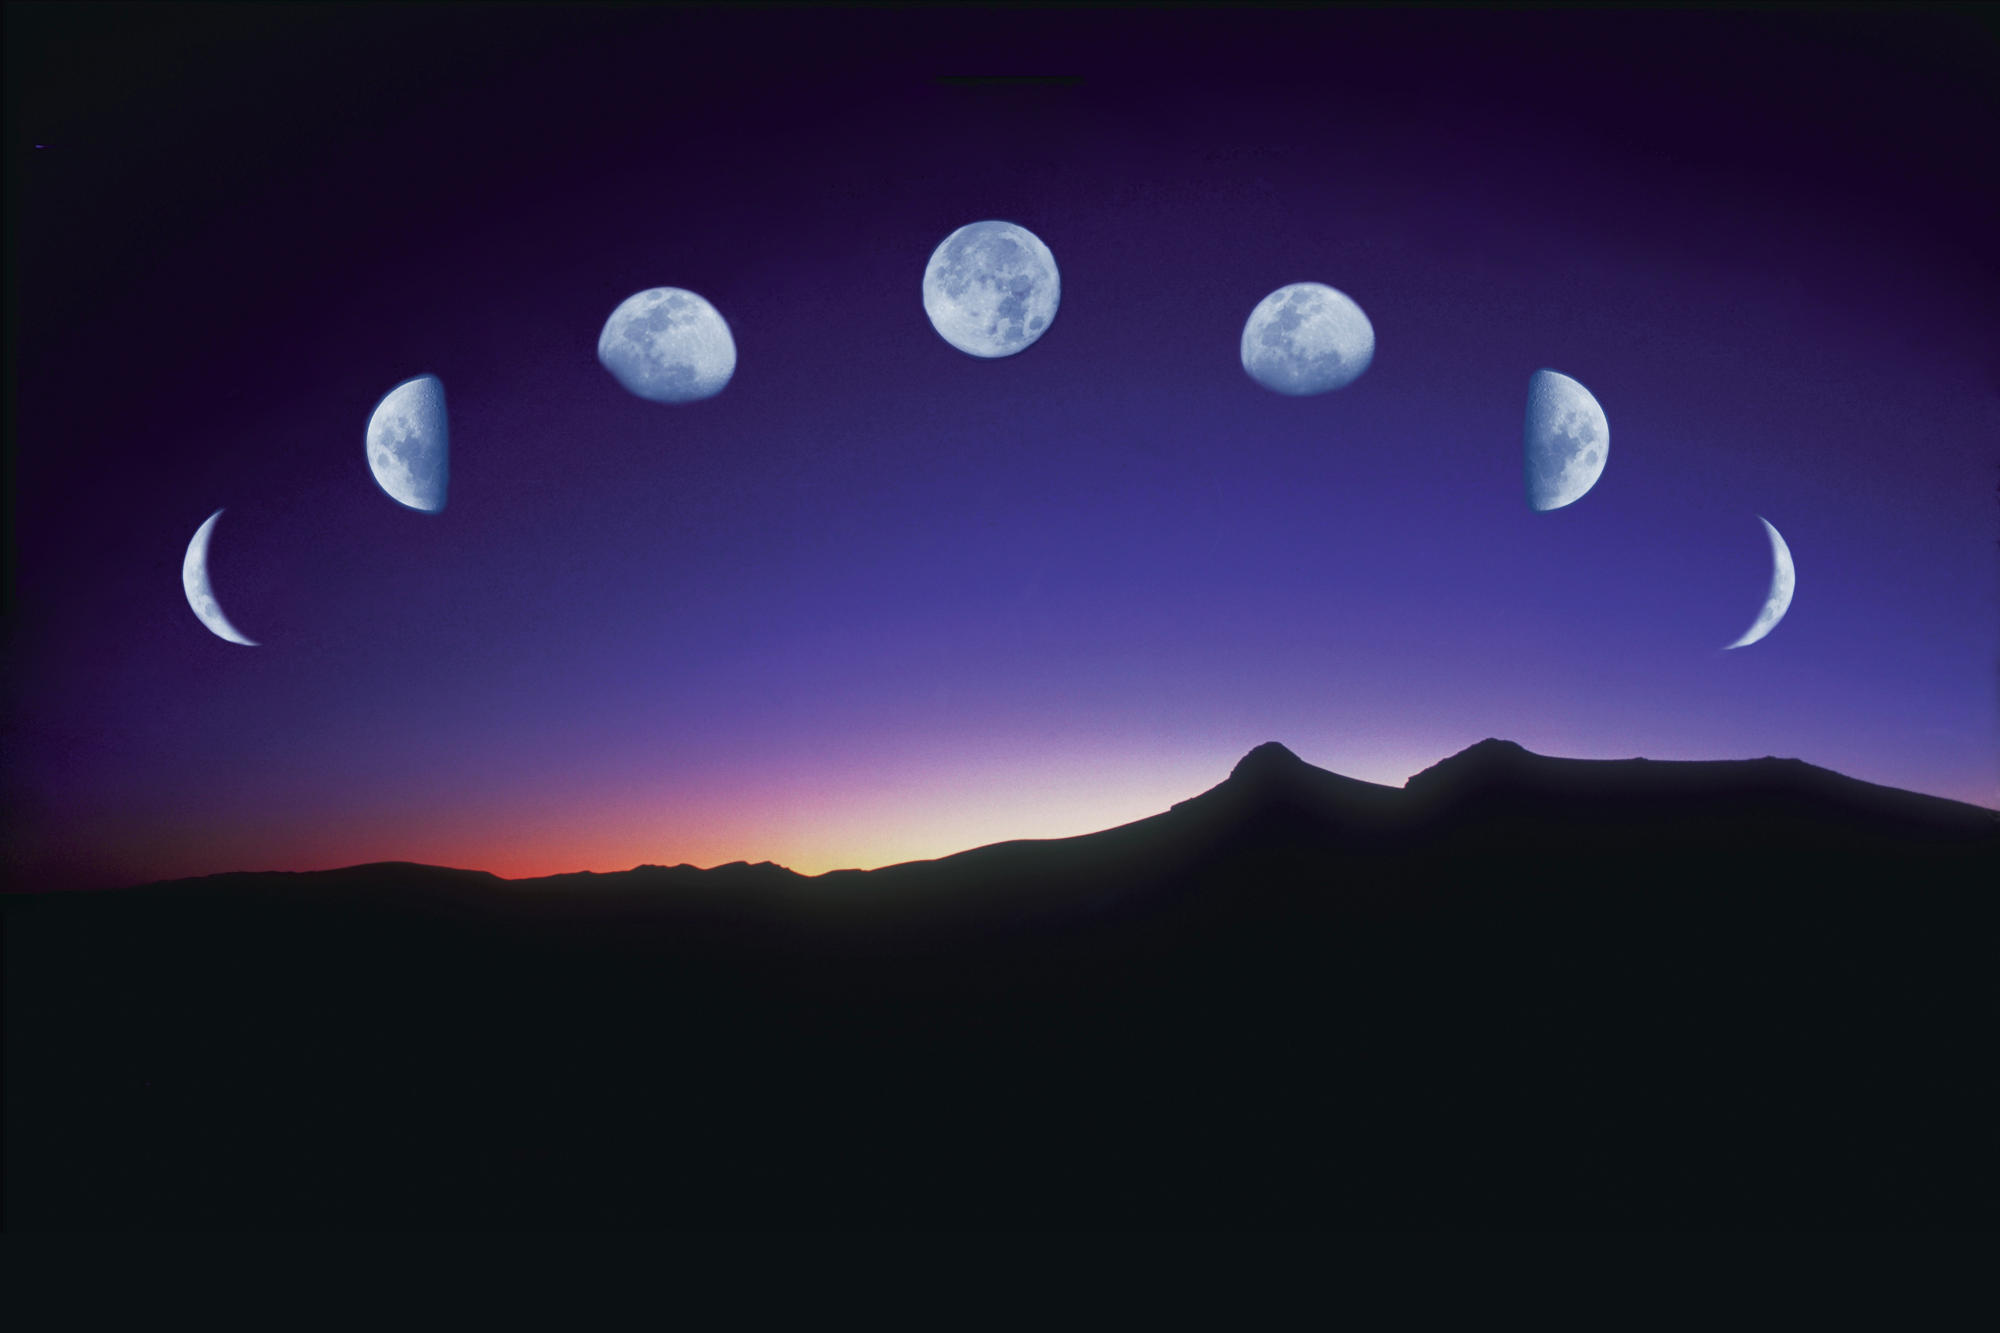 322 Moon HD Wallpapers Background Images 2000x1333